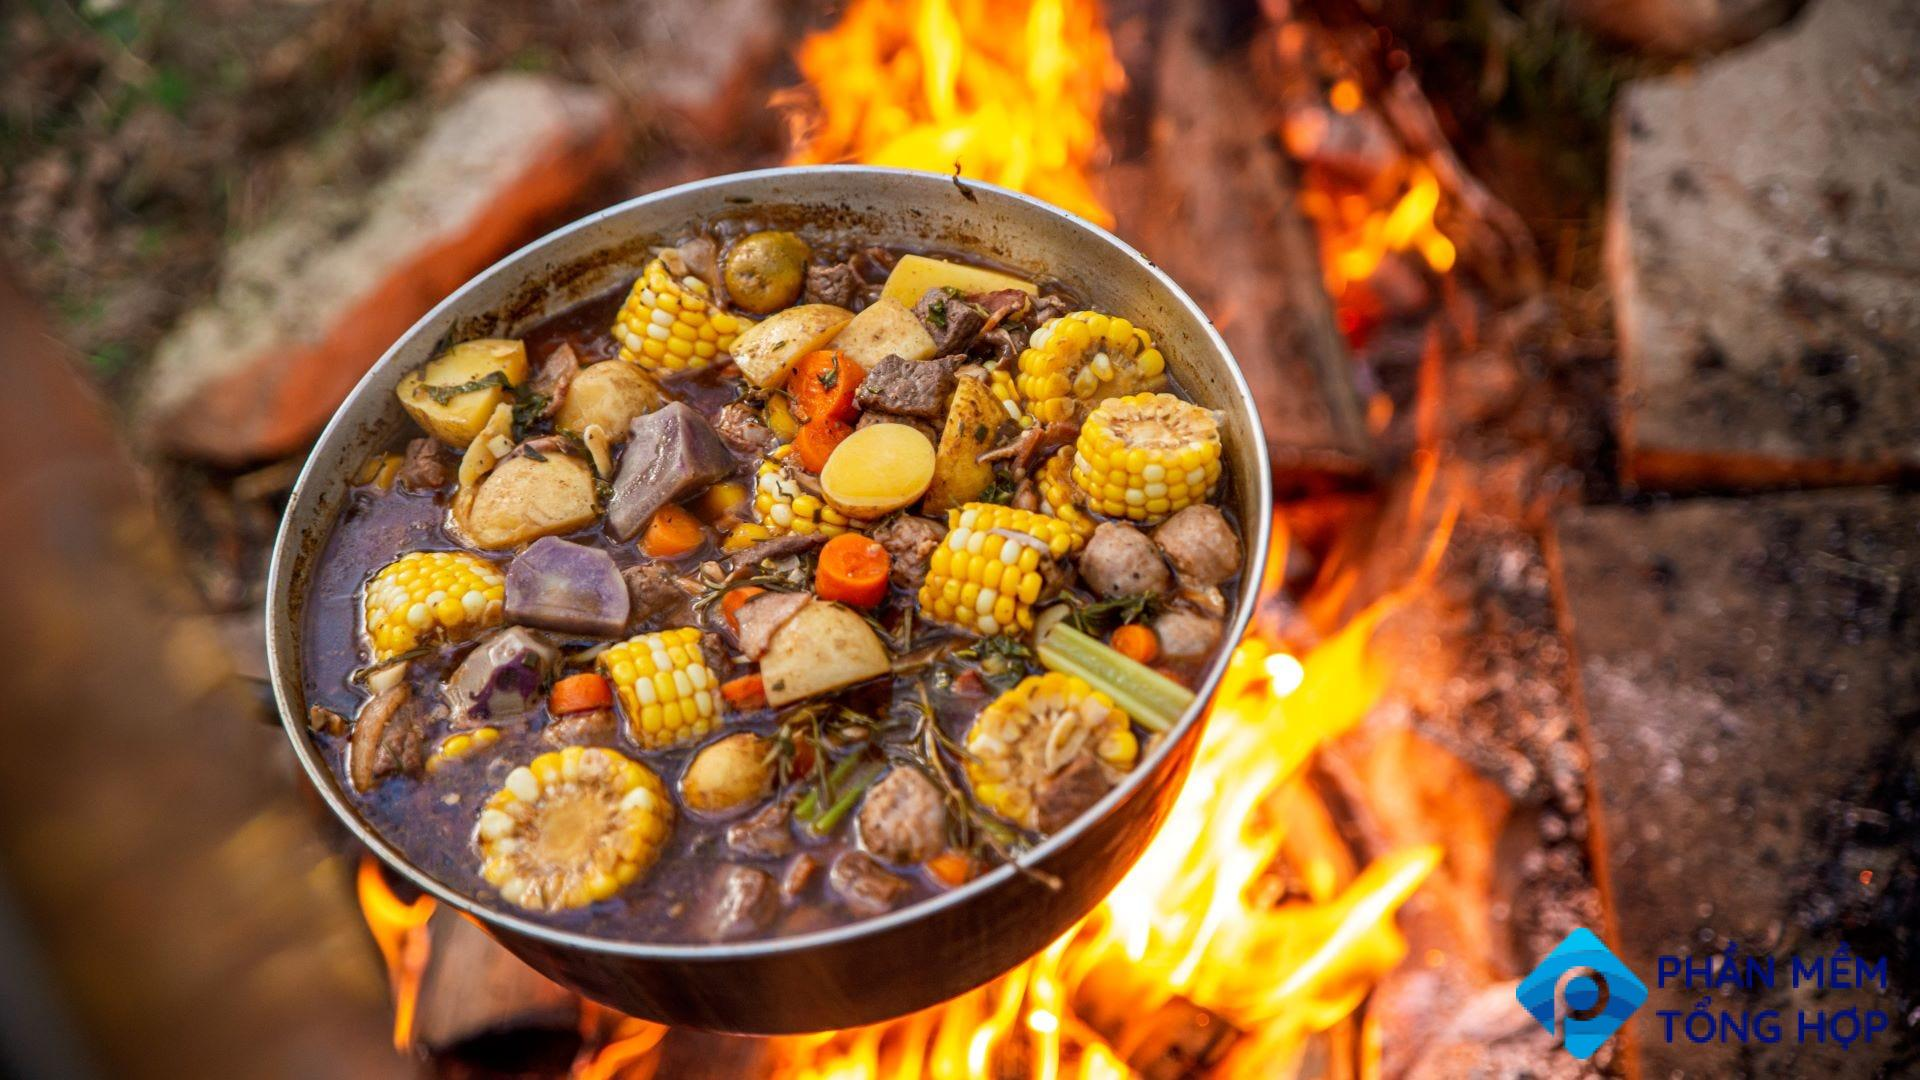 A pot of beef and veggie stew cooking over a campfire.